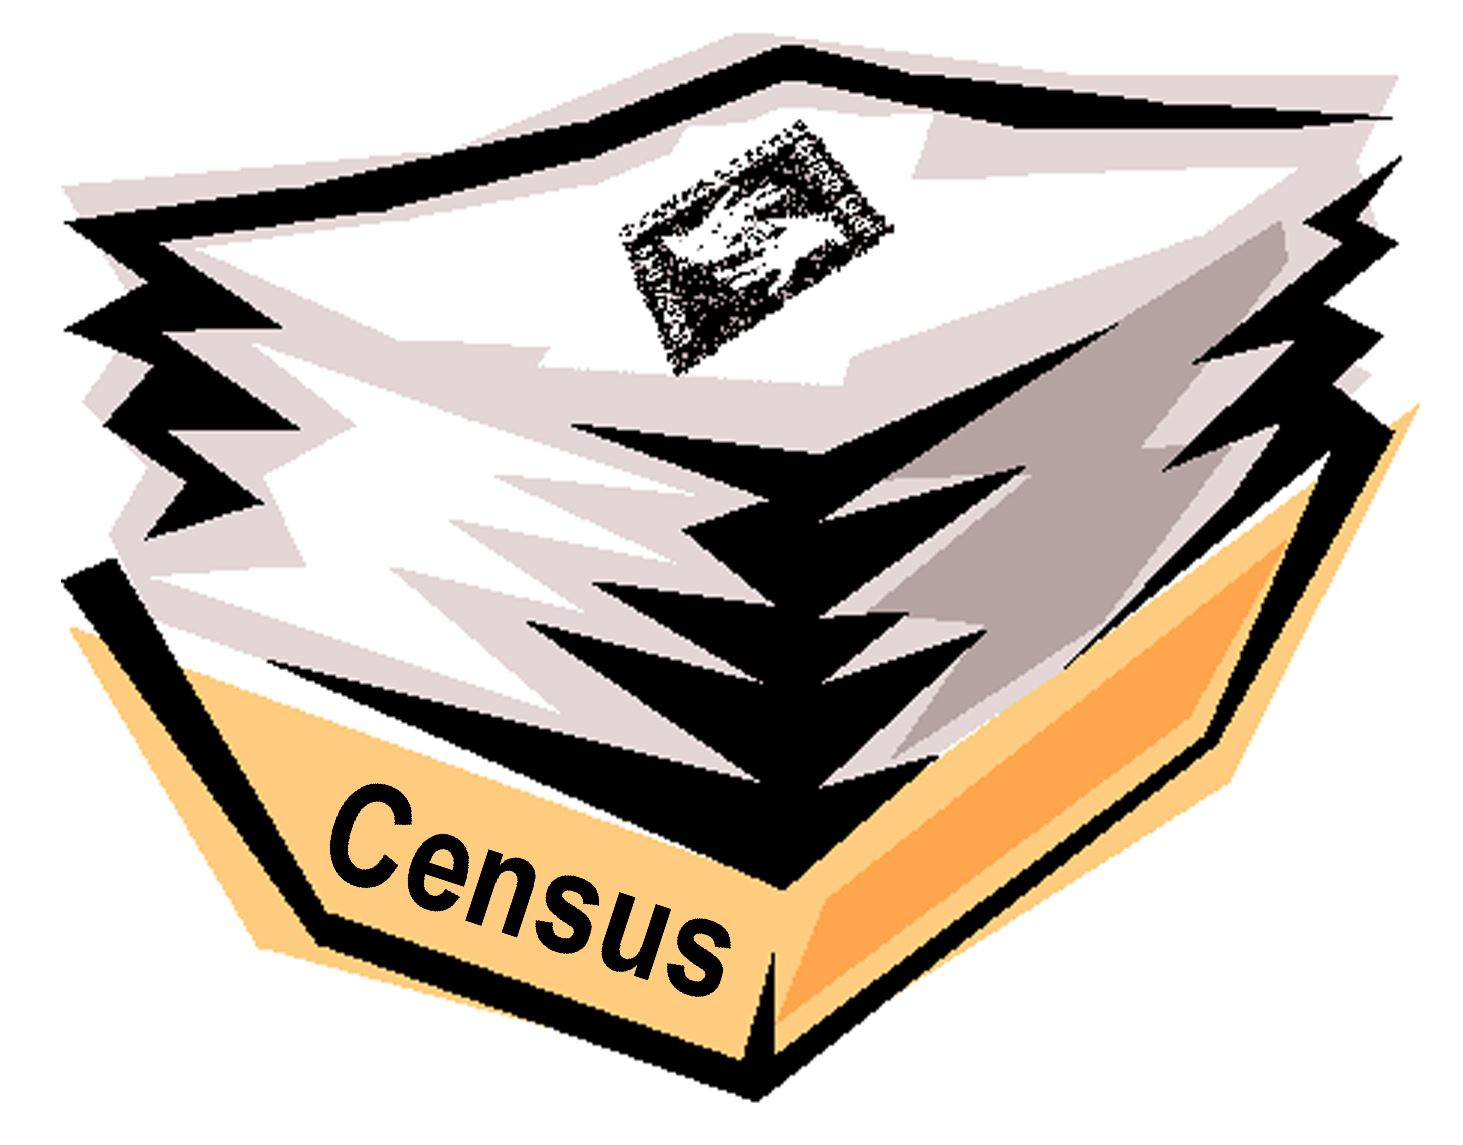 Census-image